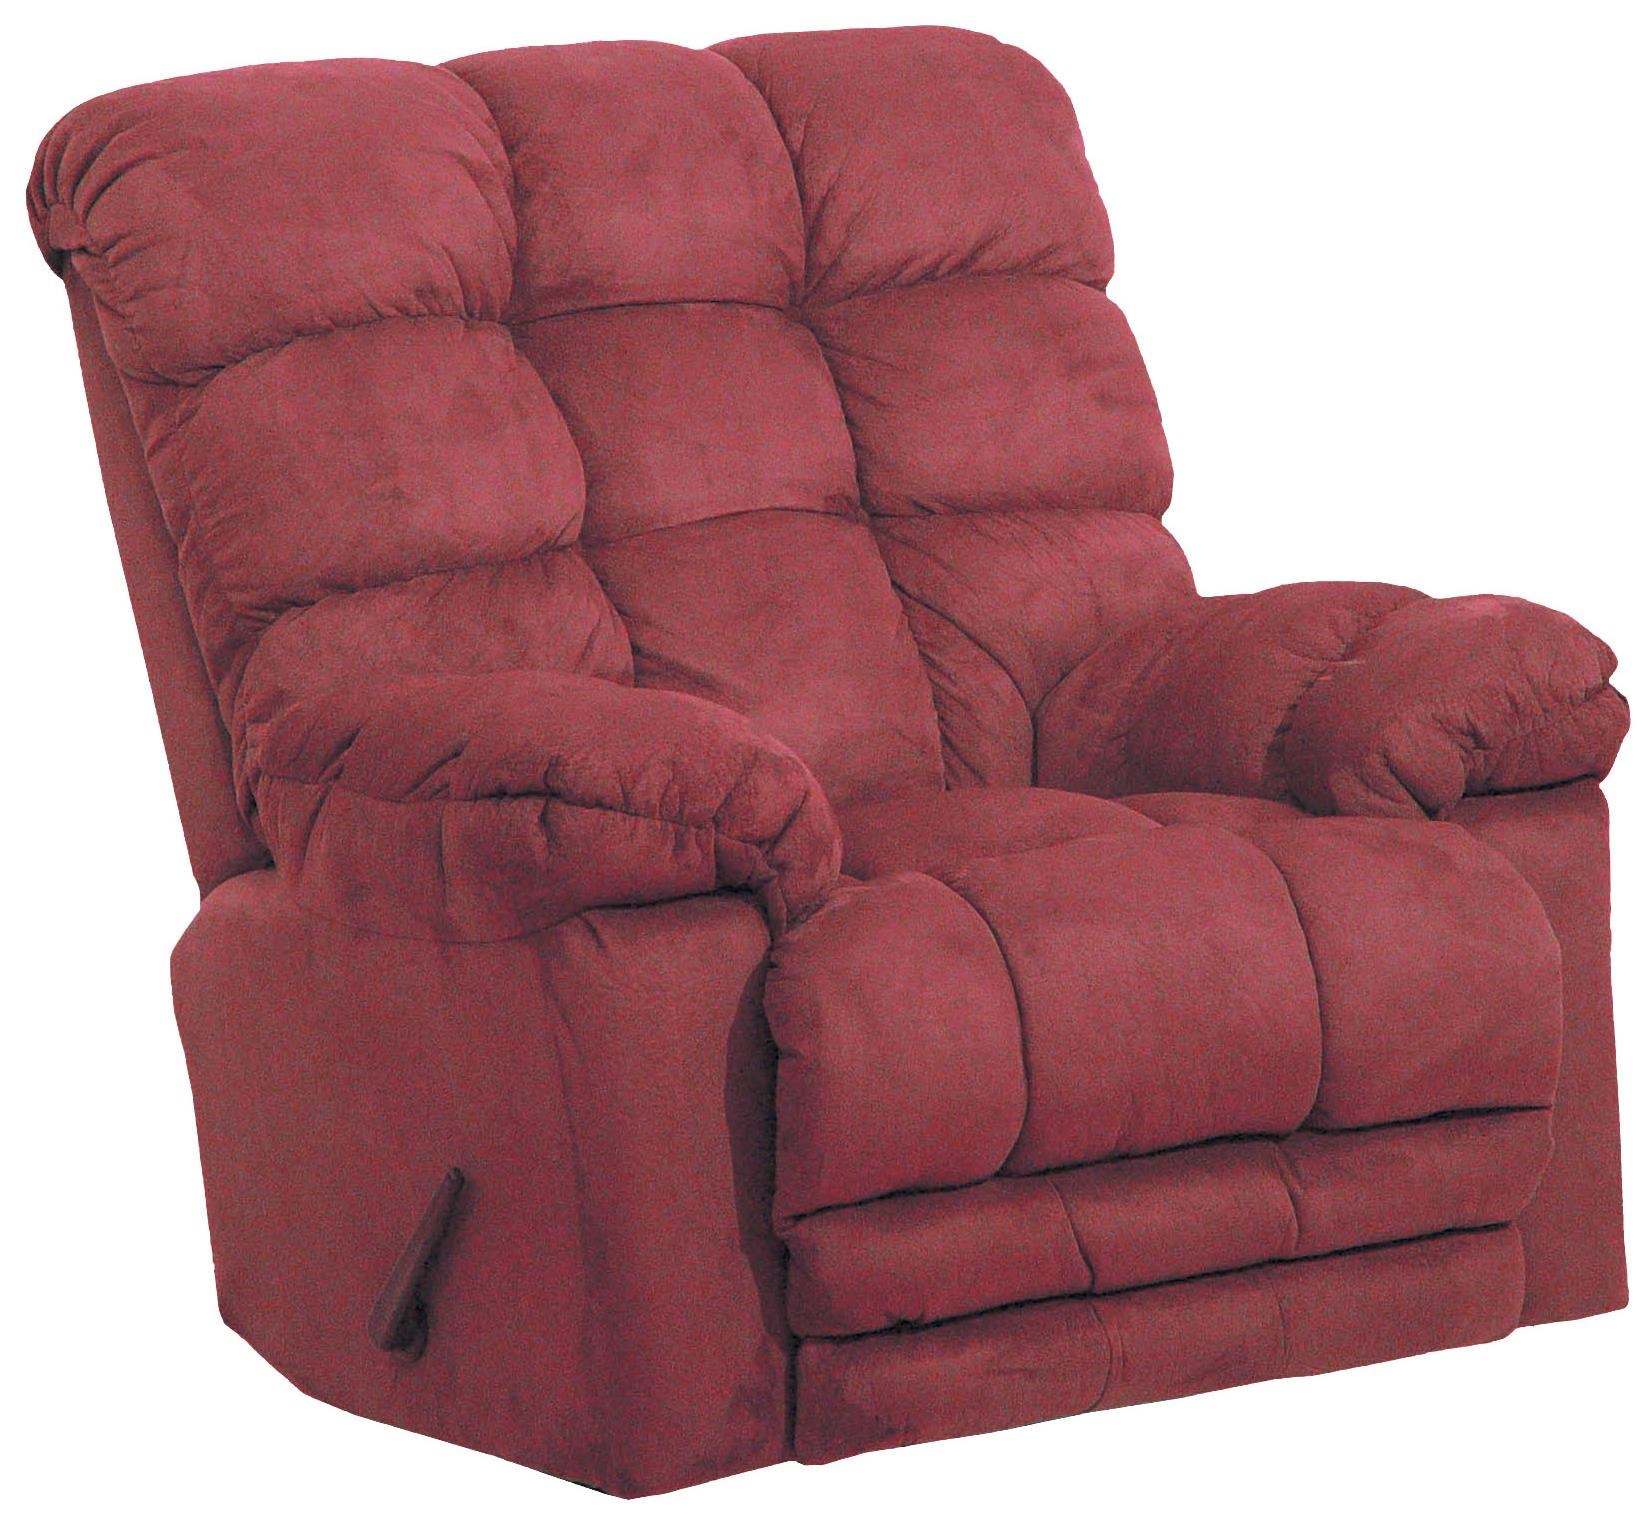 Catnapper Motion Chairs And ReclinersMagnum Chaise Rocker Recliner ...